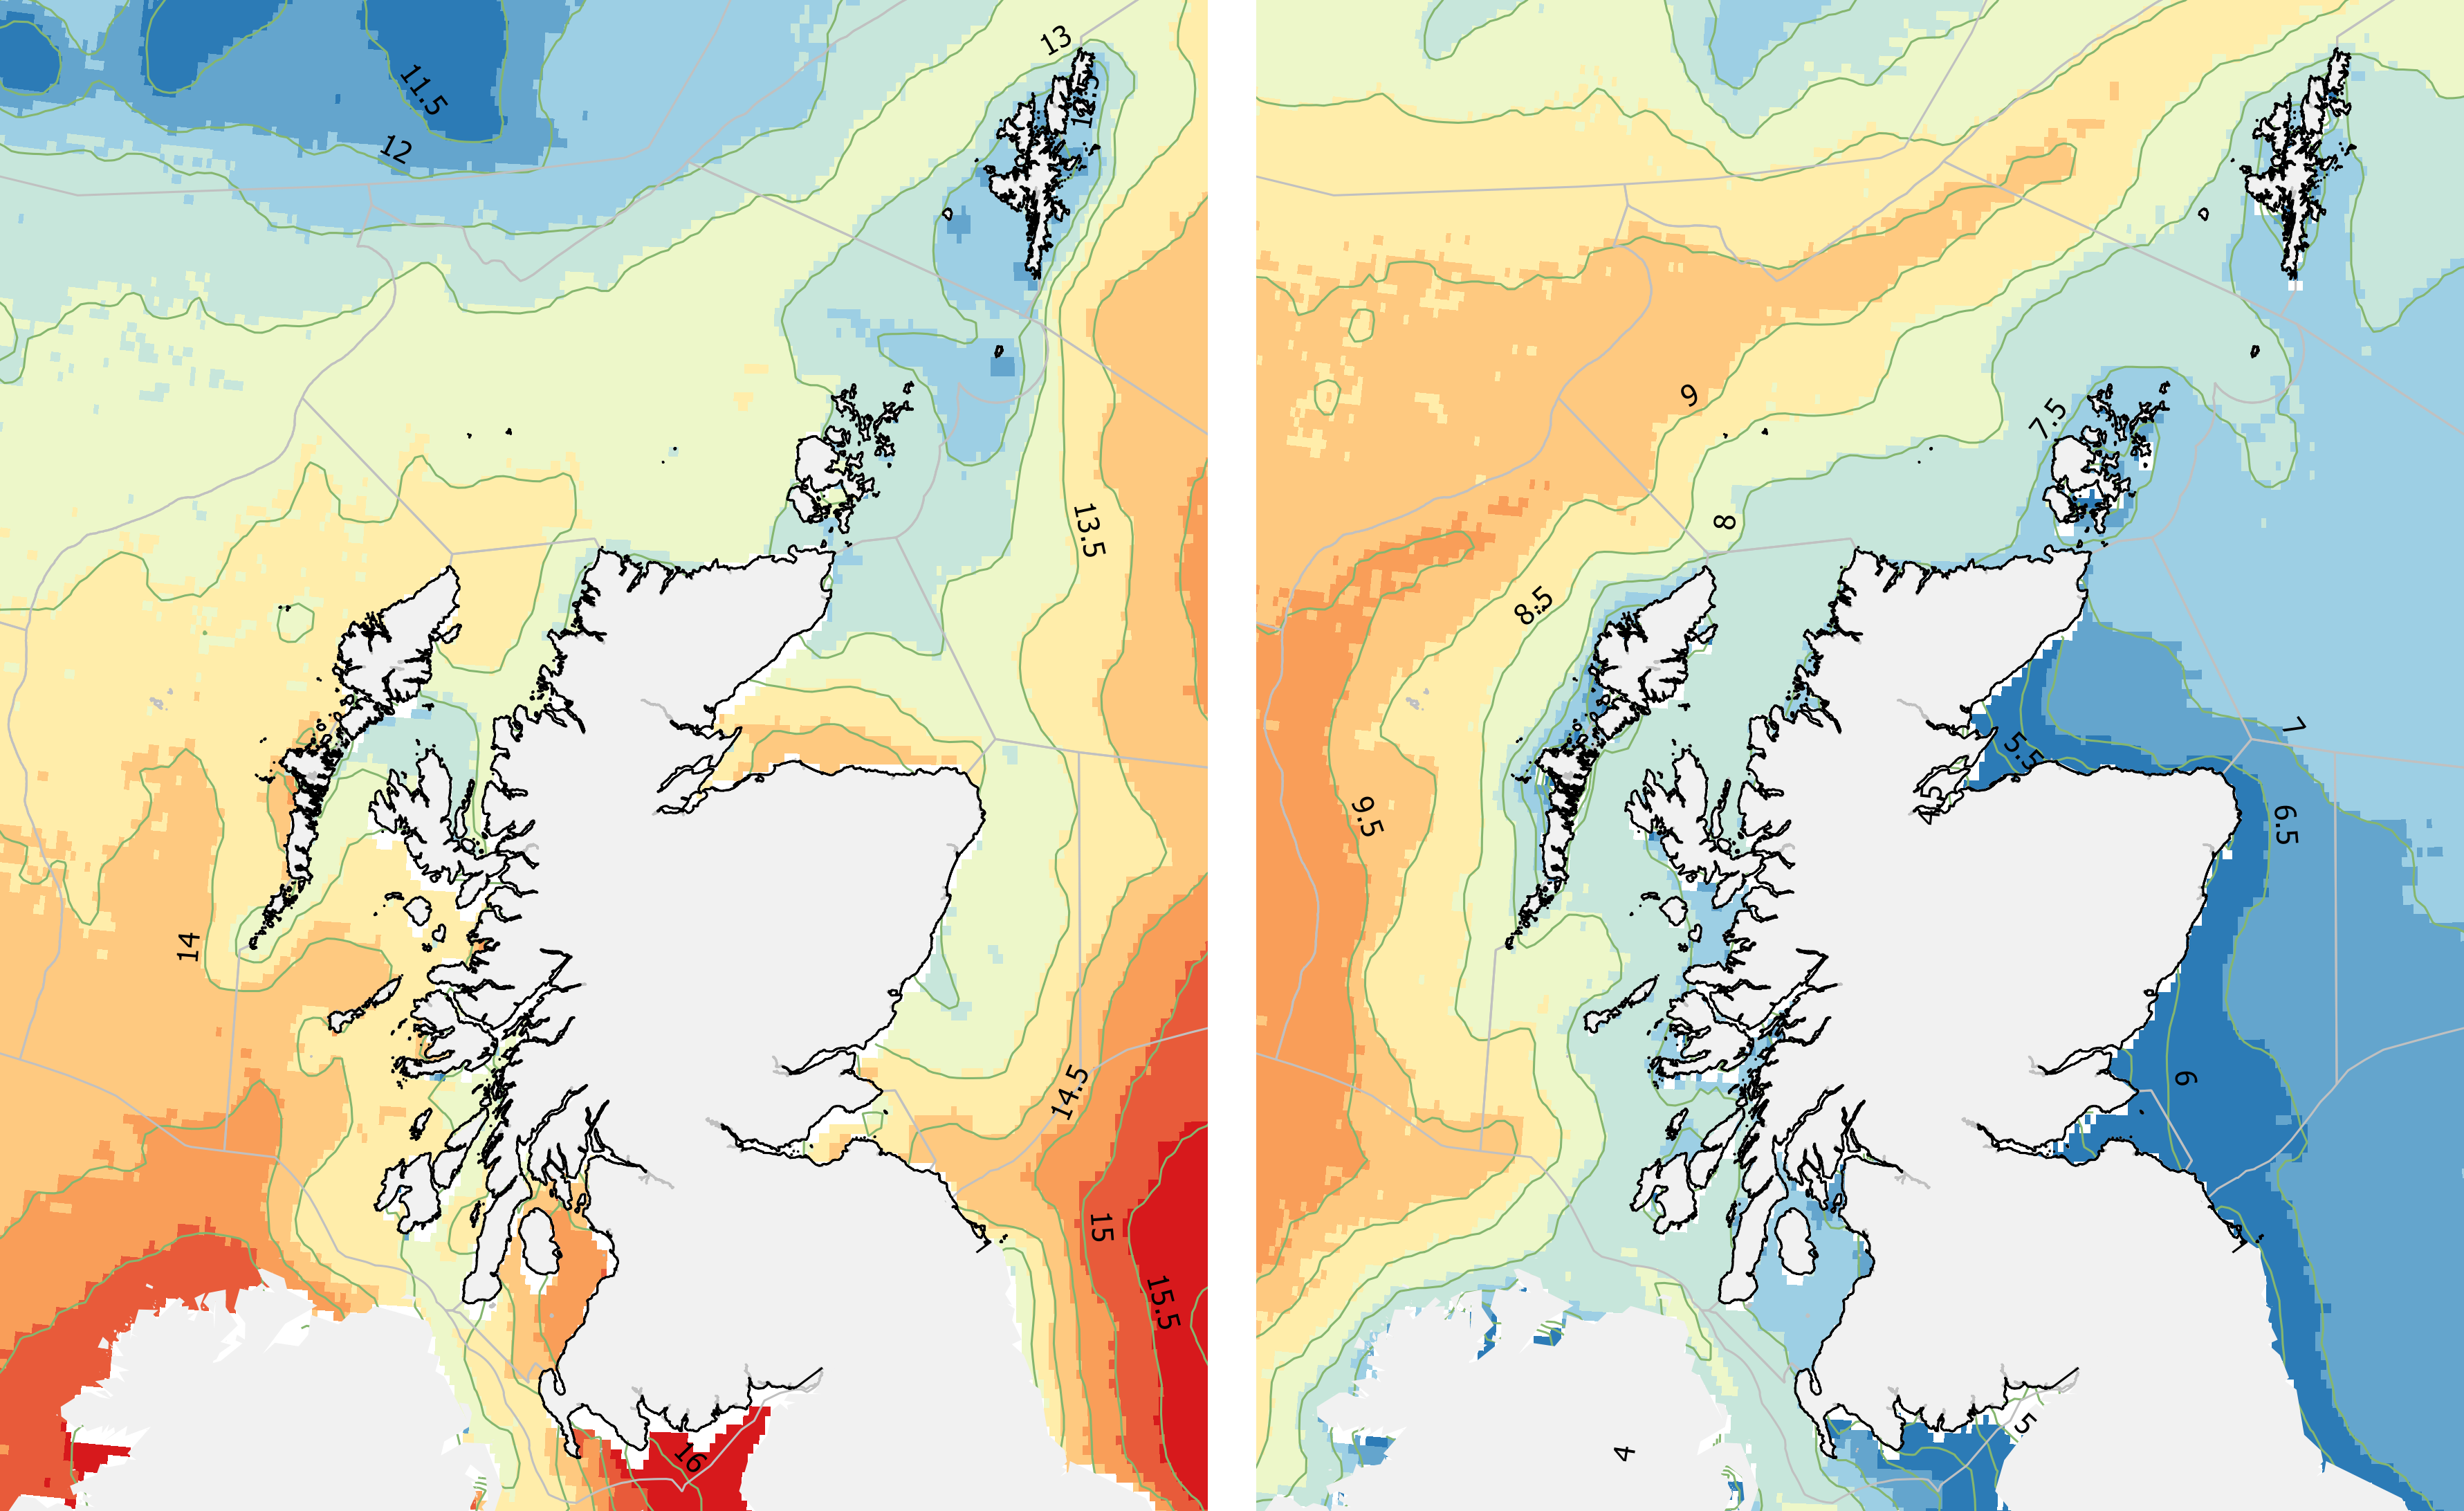 Sea surface temperature: (left) August 1982-2018 average, (right) February 1982- 2018 average (Data: NOAA OISST V2 HR daily 4km SST). Contours show 0.5°C intervals